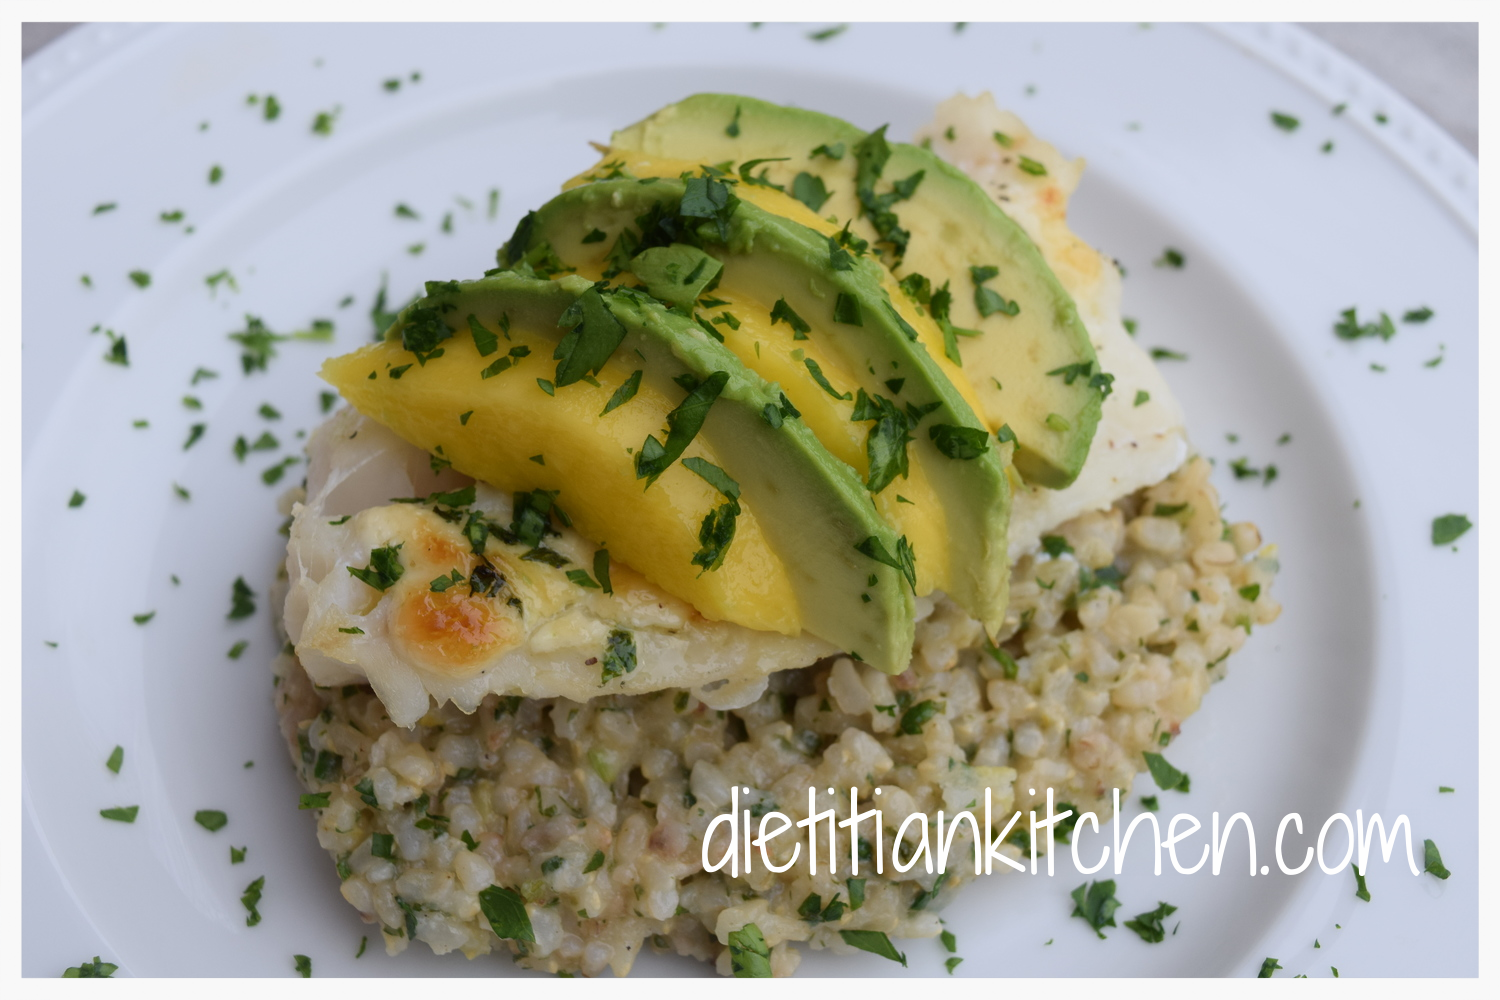 Baked Cod with Mango & Avocado Slices and Lemon Parsley Risotto